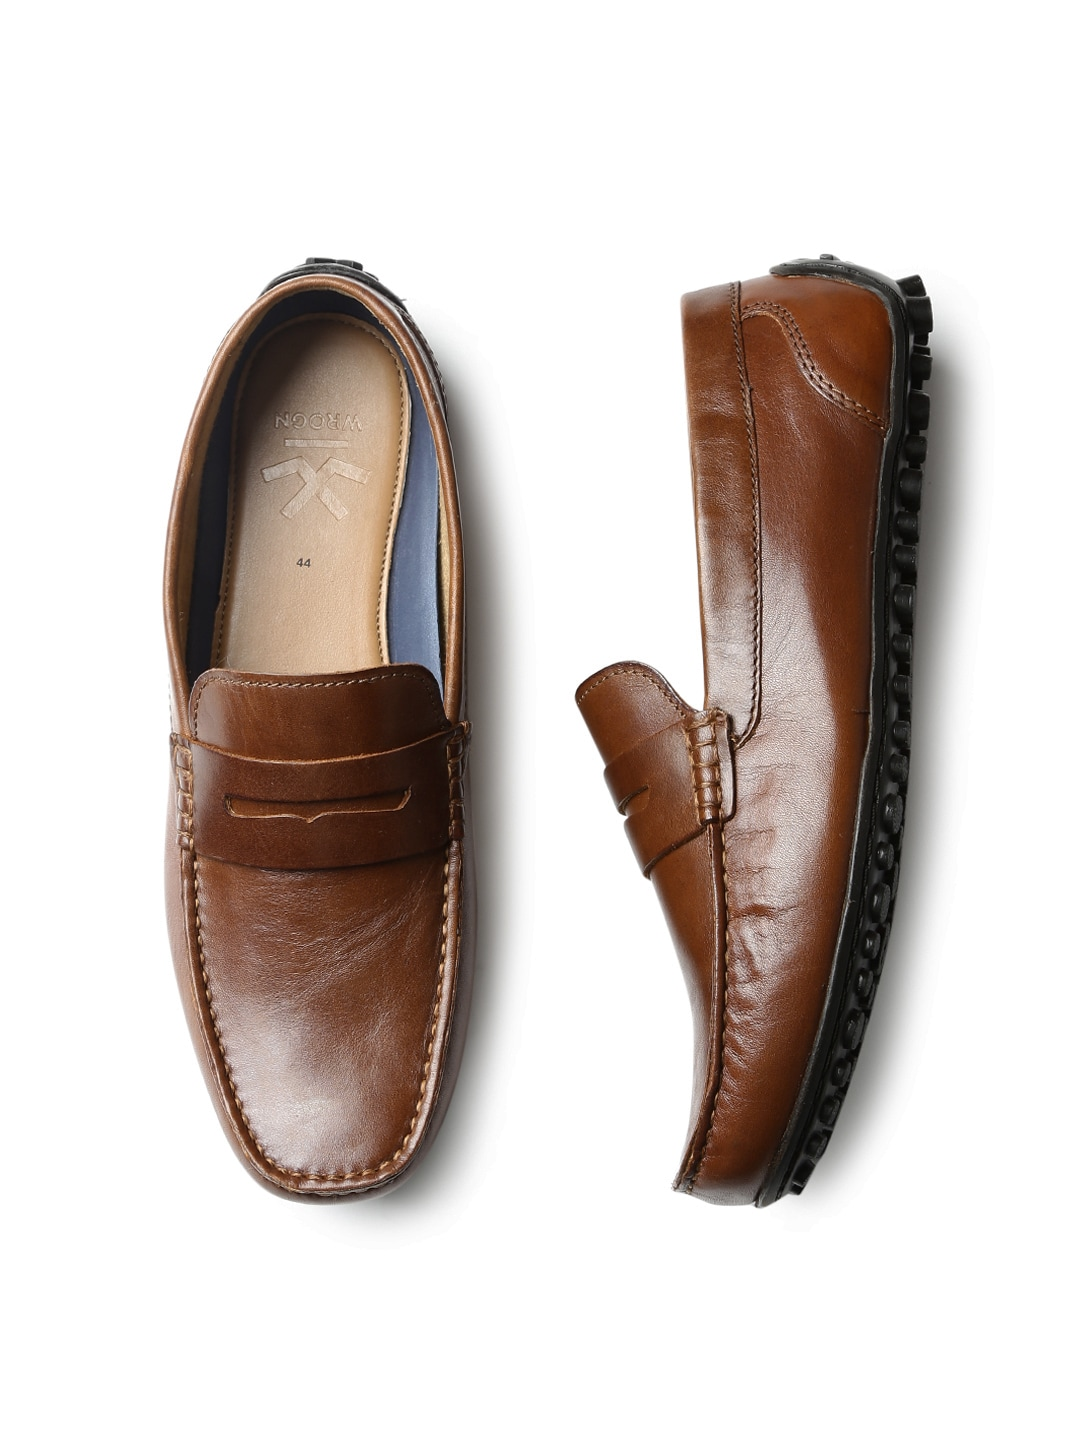 6de809411b1 Loafer Shoes - Buy Latest Loafer Shoes For Men